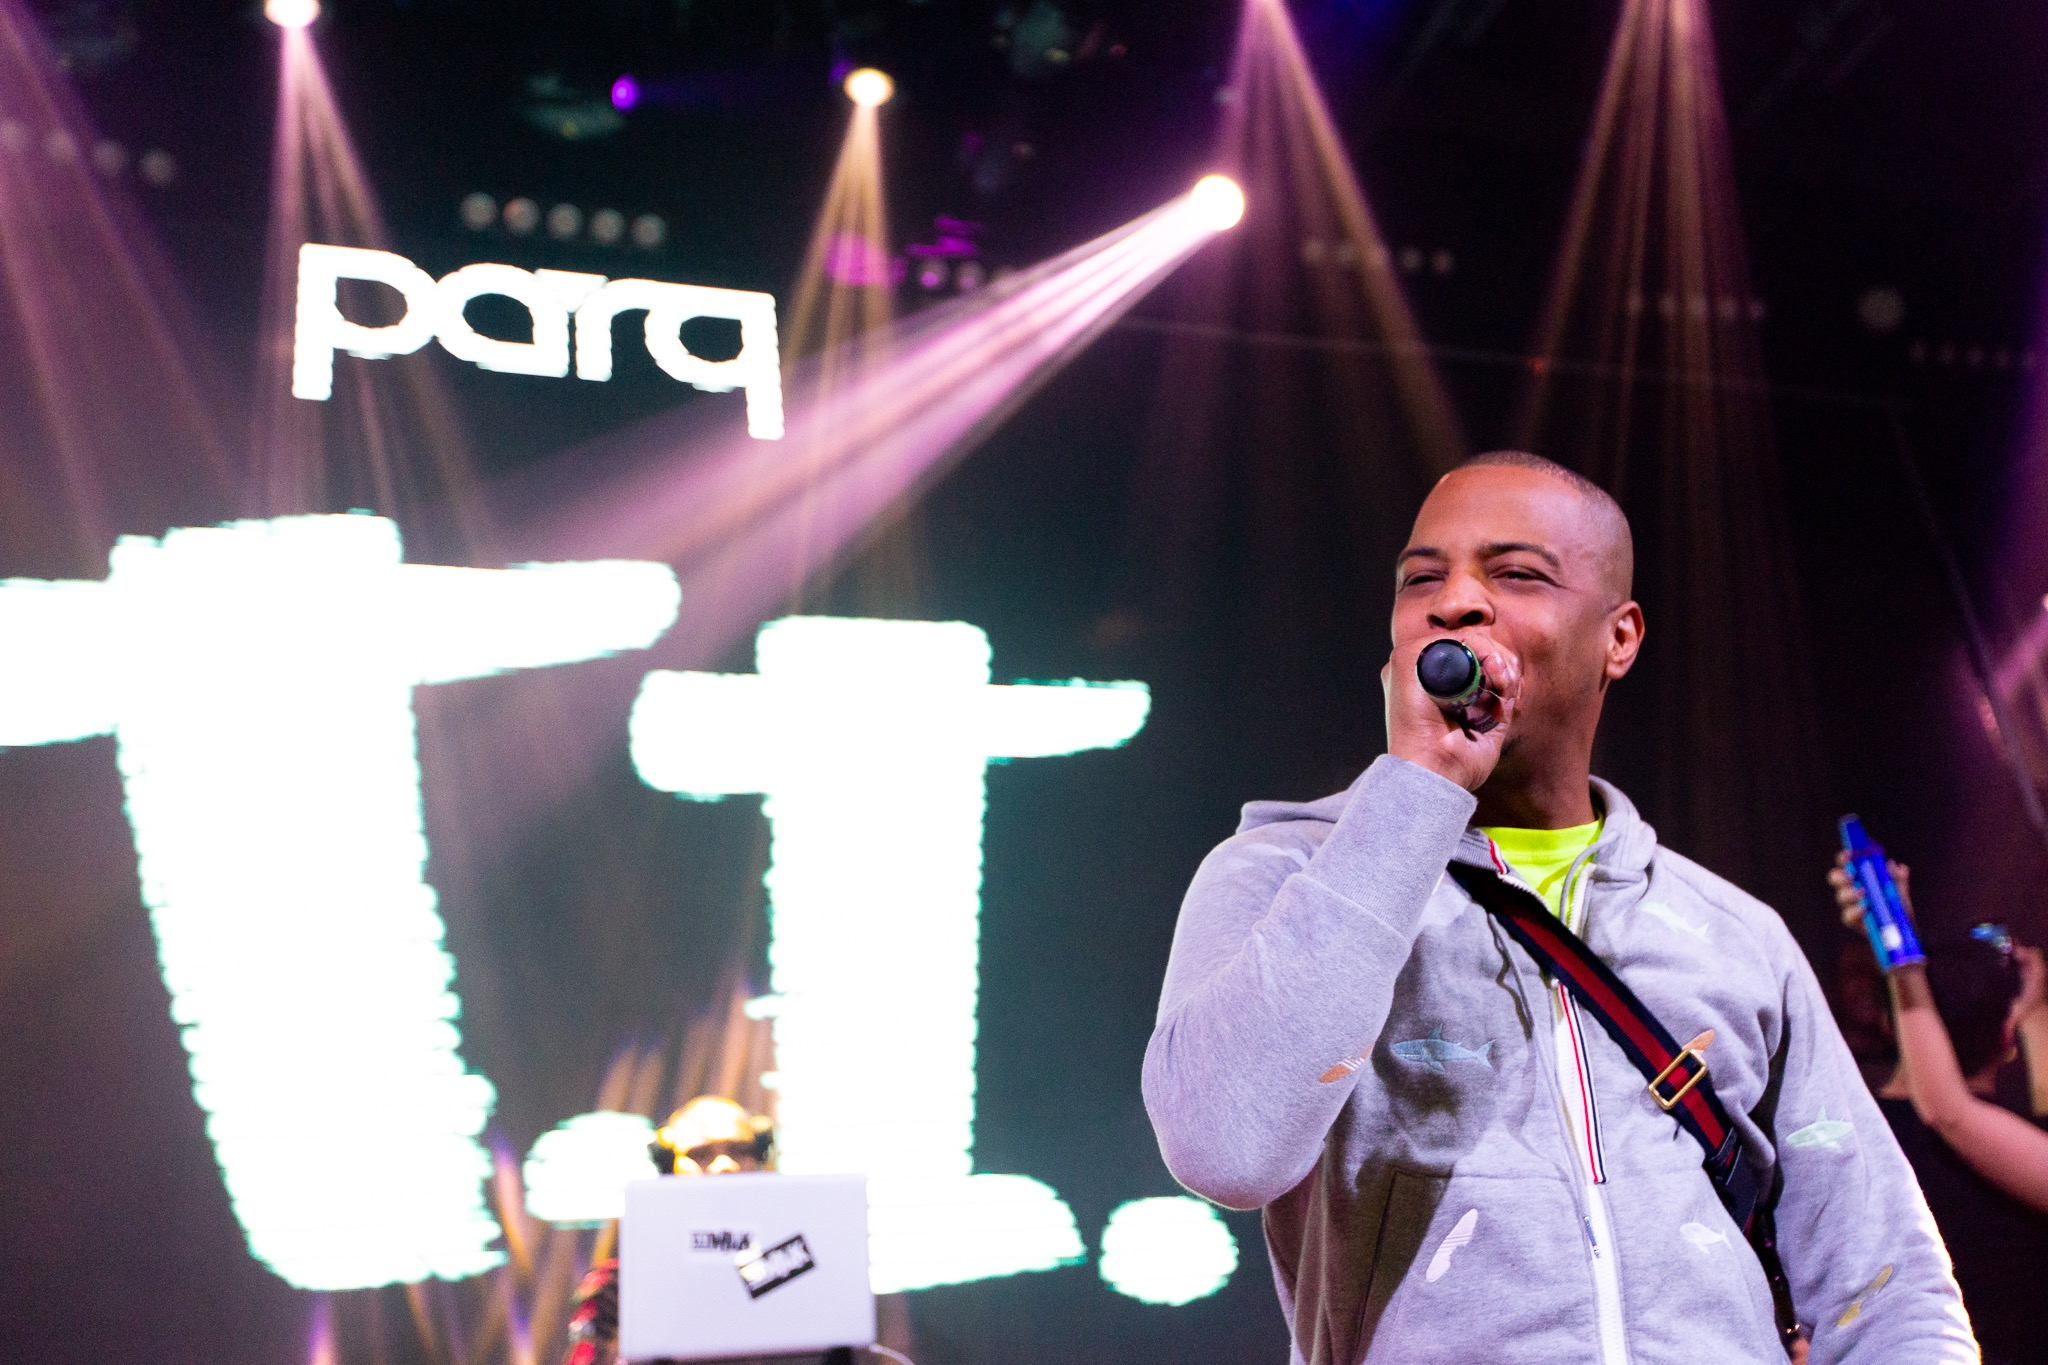 T.I at Parq for PacificSD 06-30-18 (42 of 48).jpg